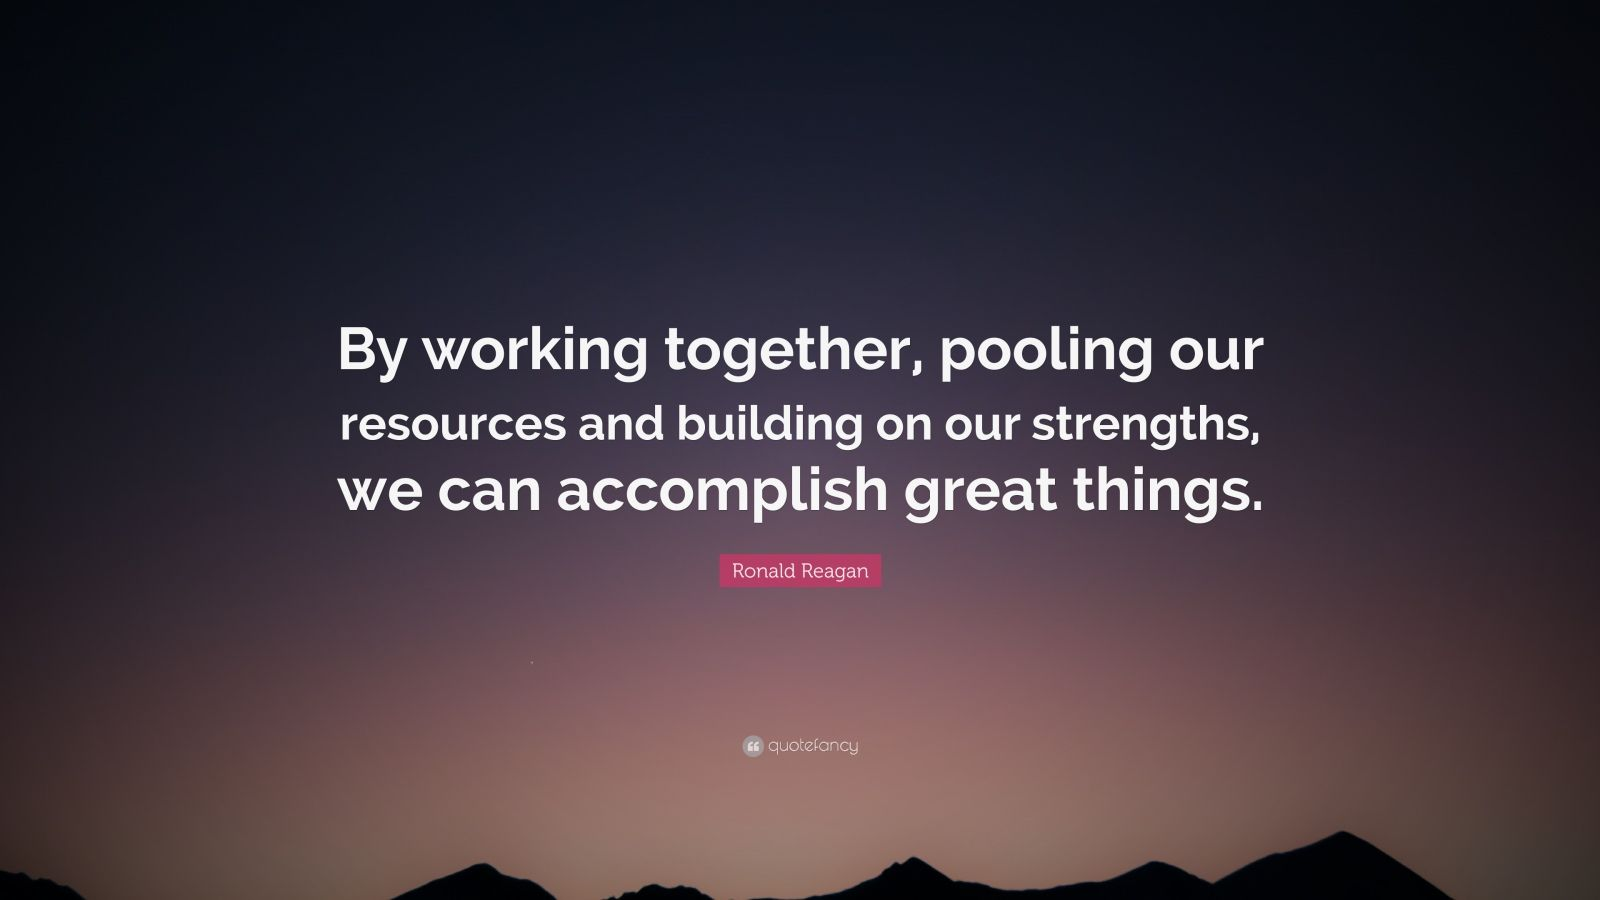 Aristotle Quotes Wallpaper Ronald Reagan Quote By Working Together Pooling Our